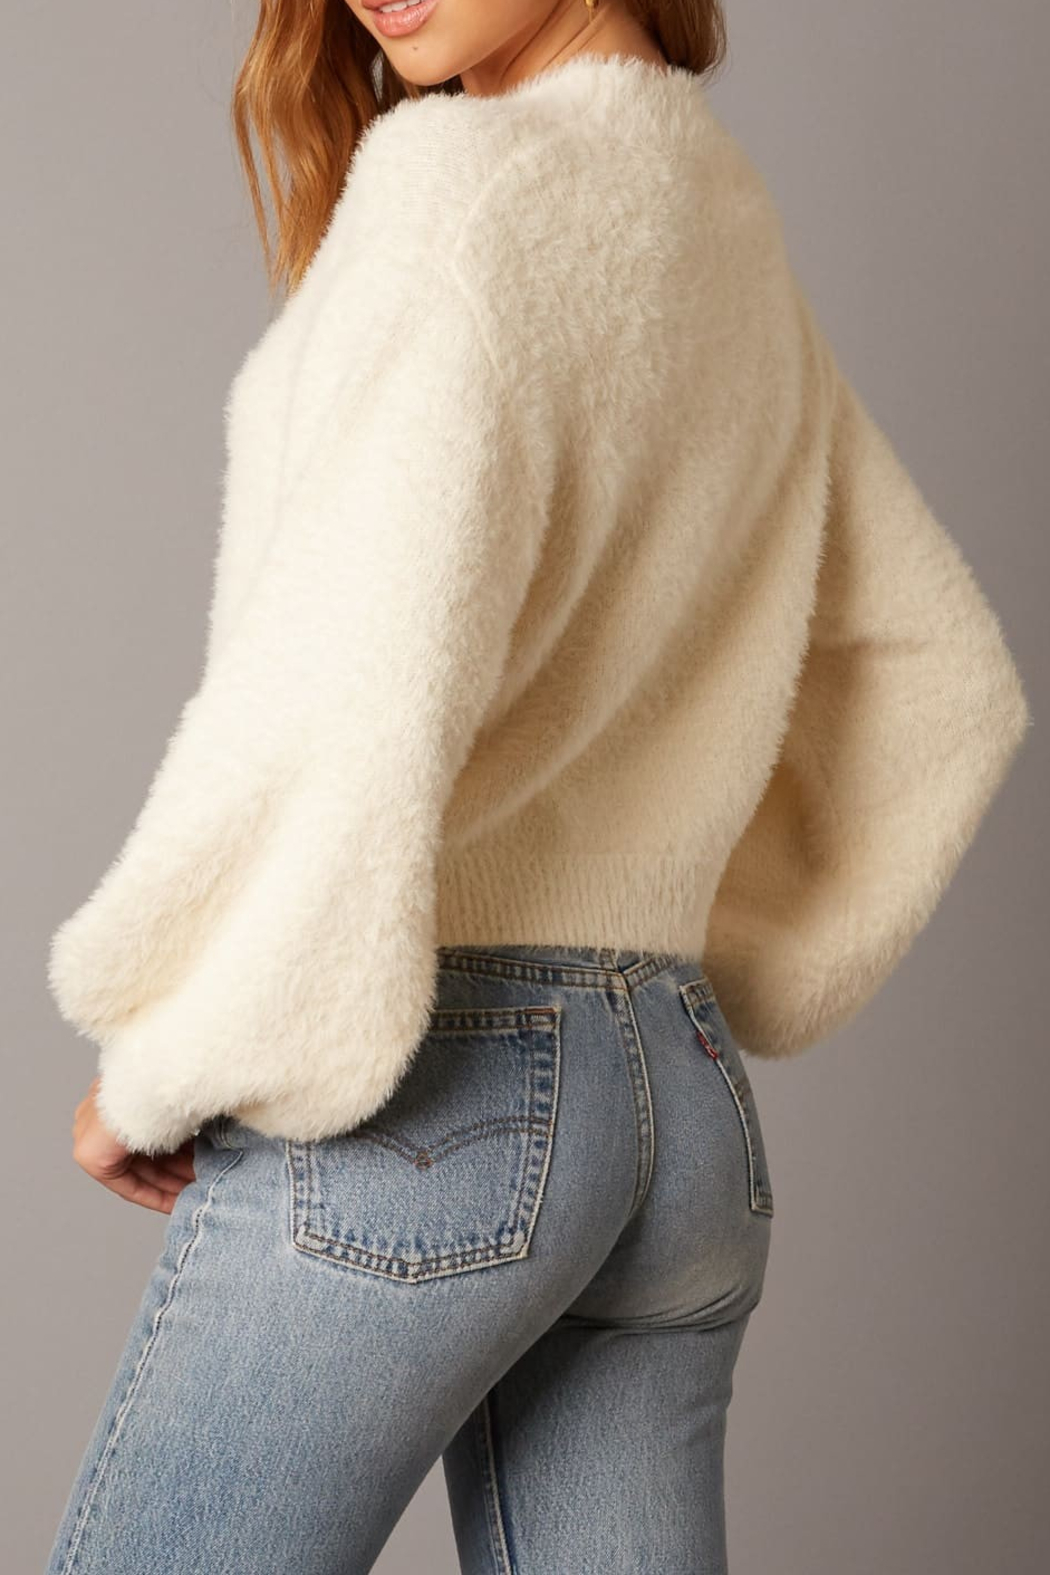 Cotton Candy LA Fuzzy Sweater Ivory - Back Cropped Image